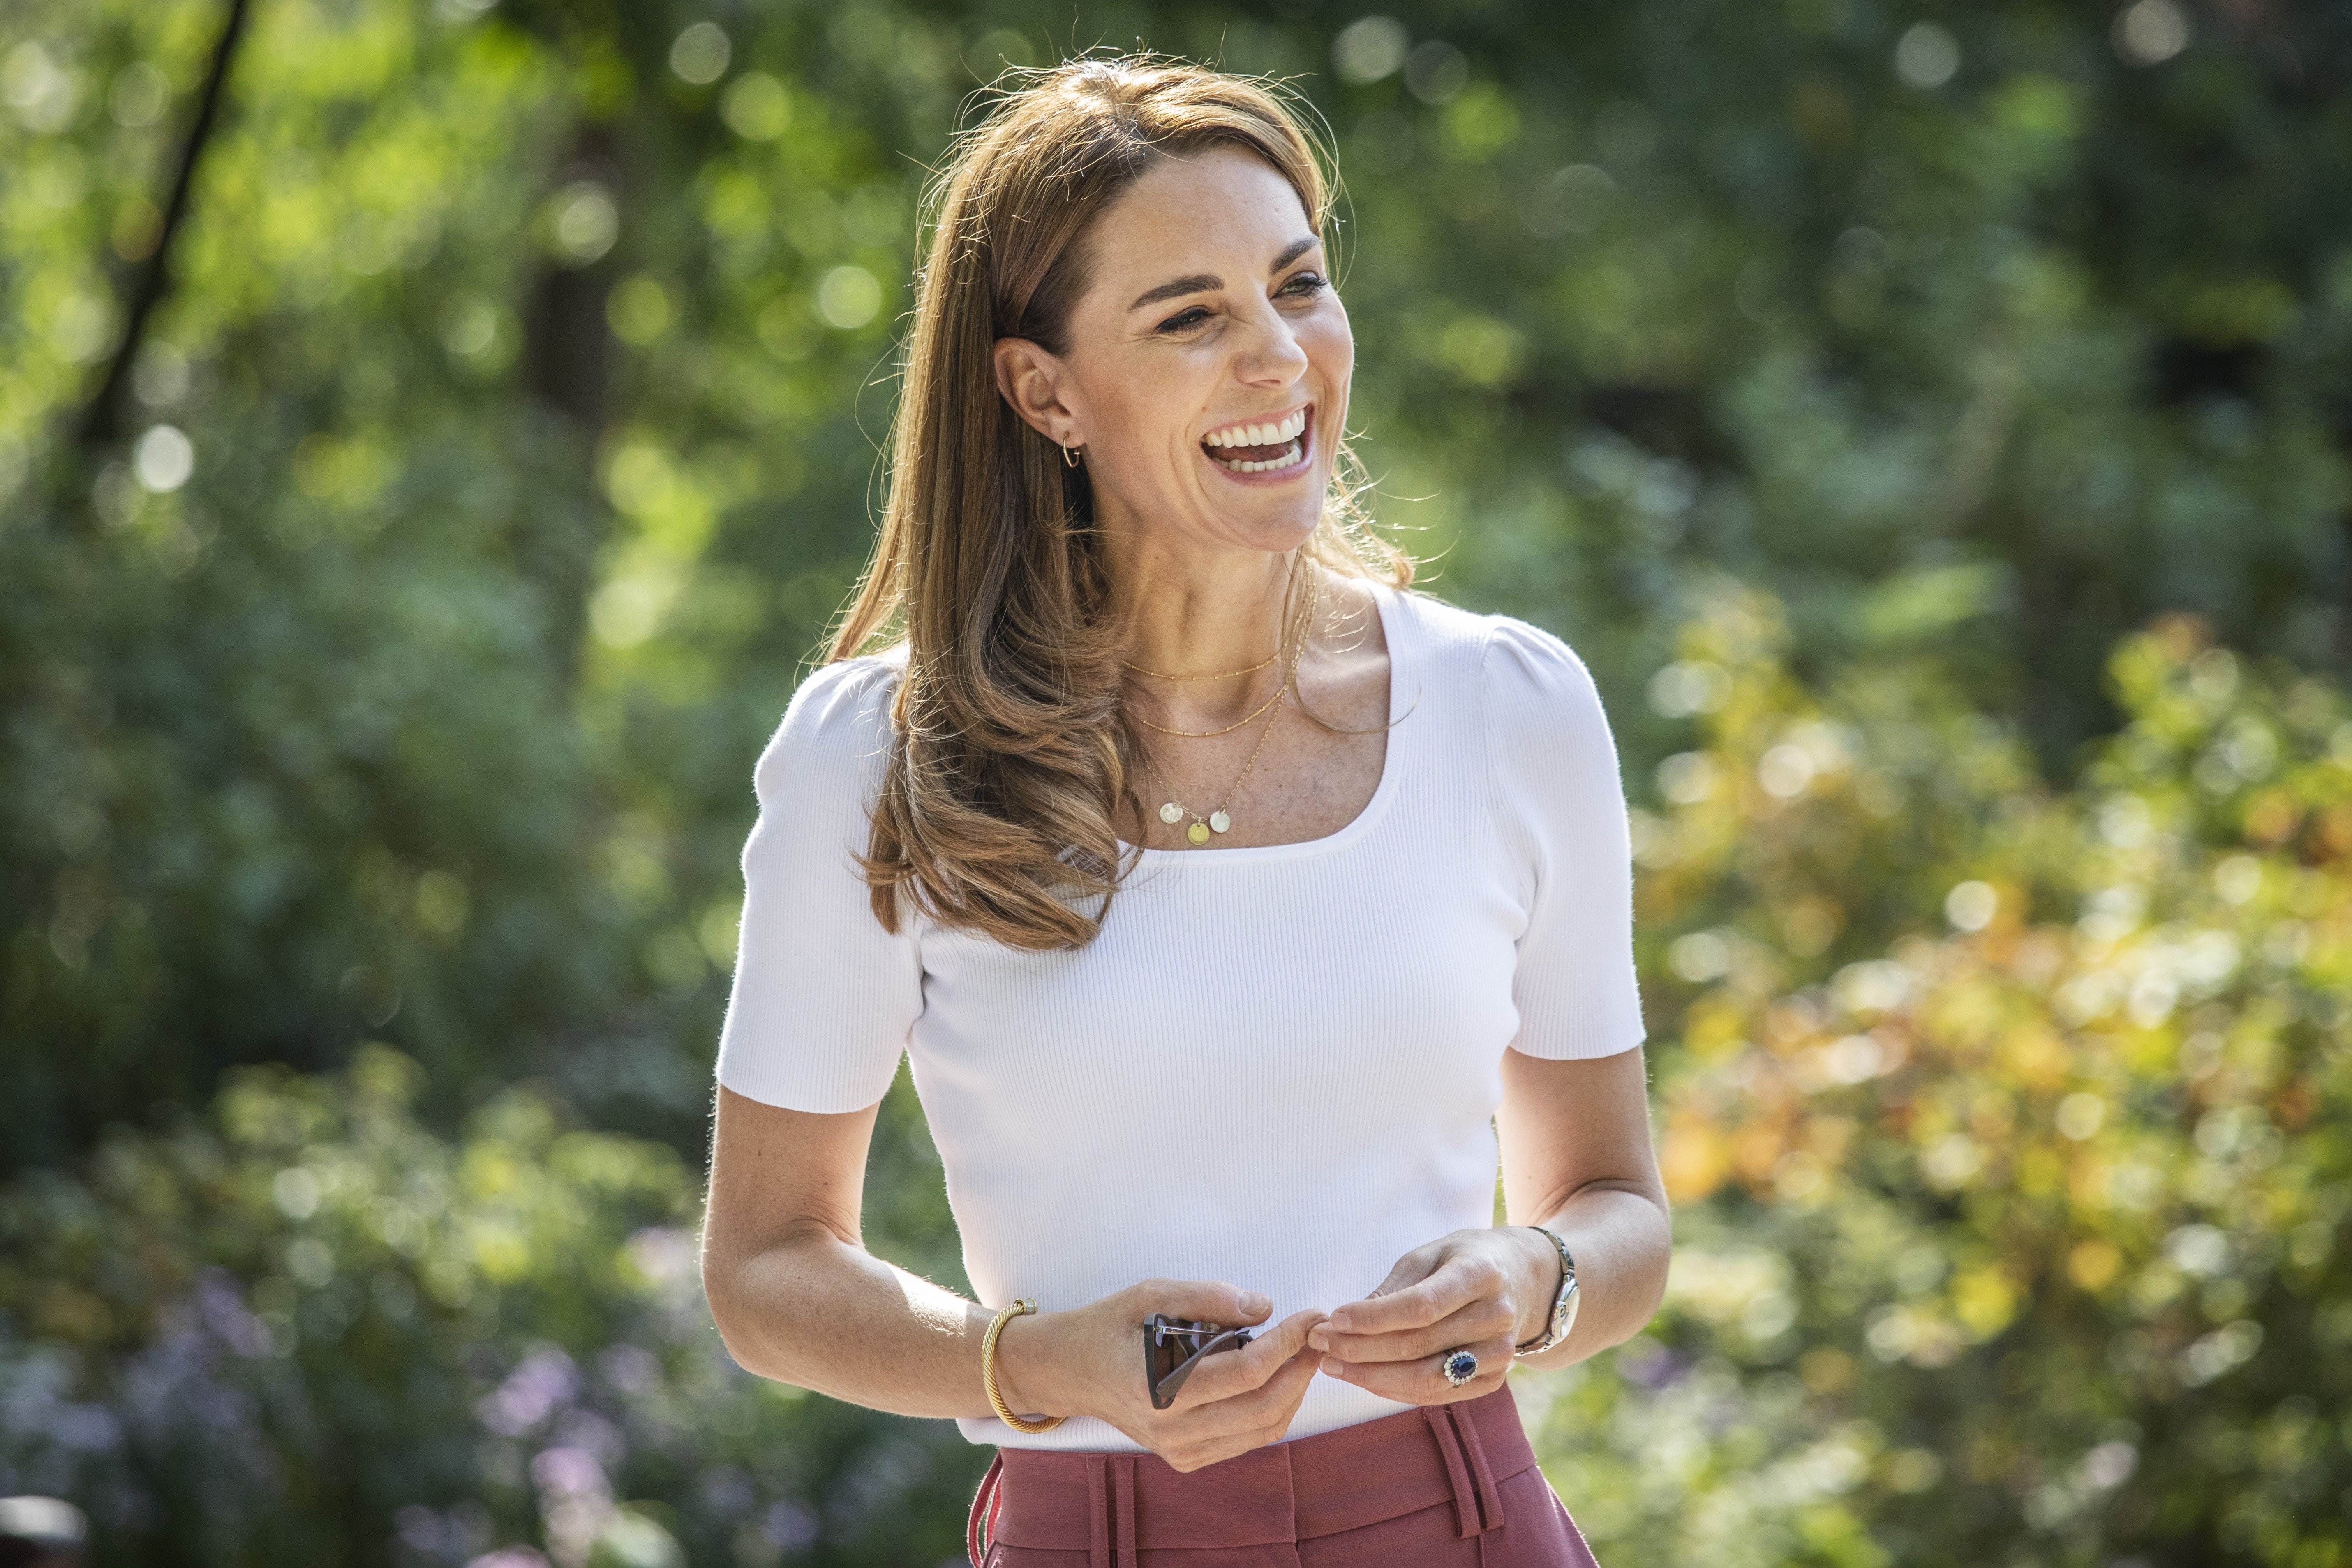 Kate Middleton talks to families who are part of organizations helping parents amid the COVID-19 crisis in Battersea Park, London on September 22, 2020 | Photo: Getty Images